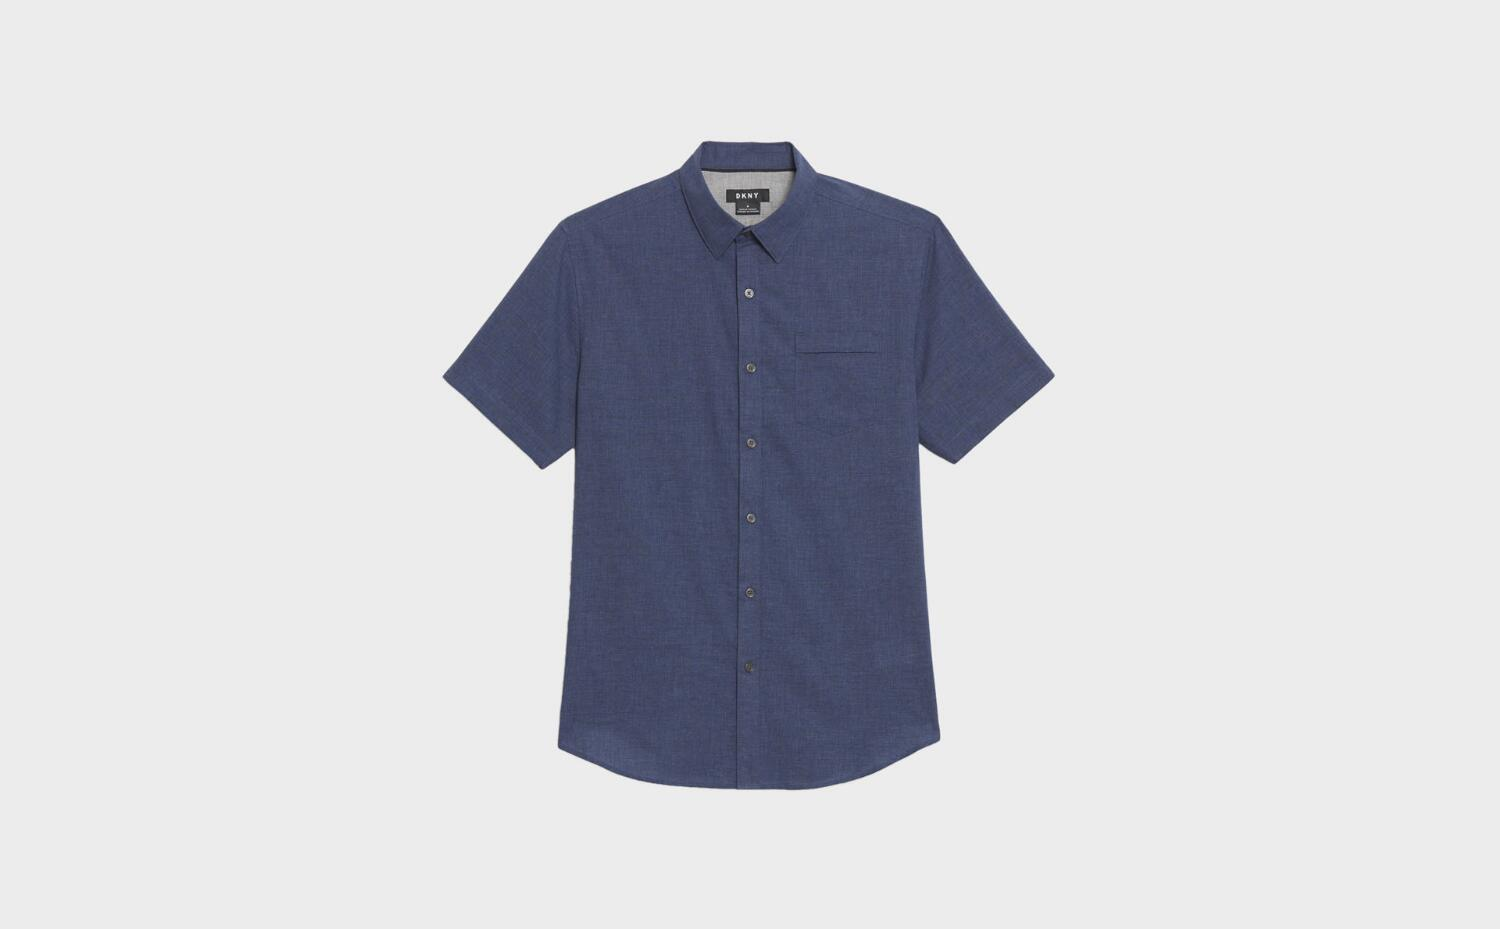 7.	One button down short sleeves shirt